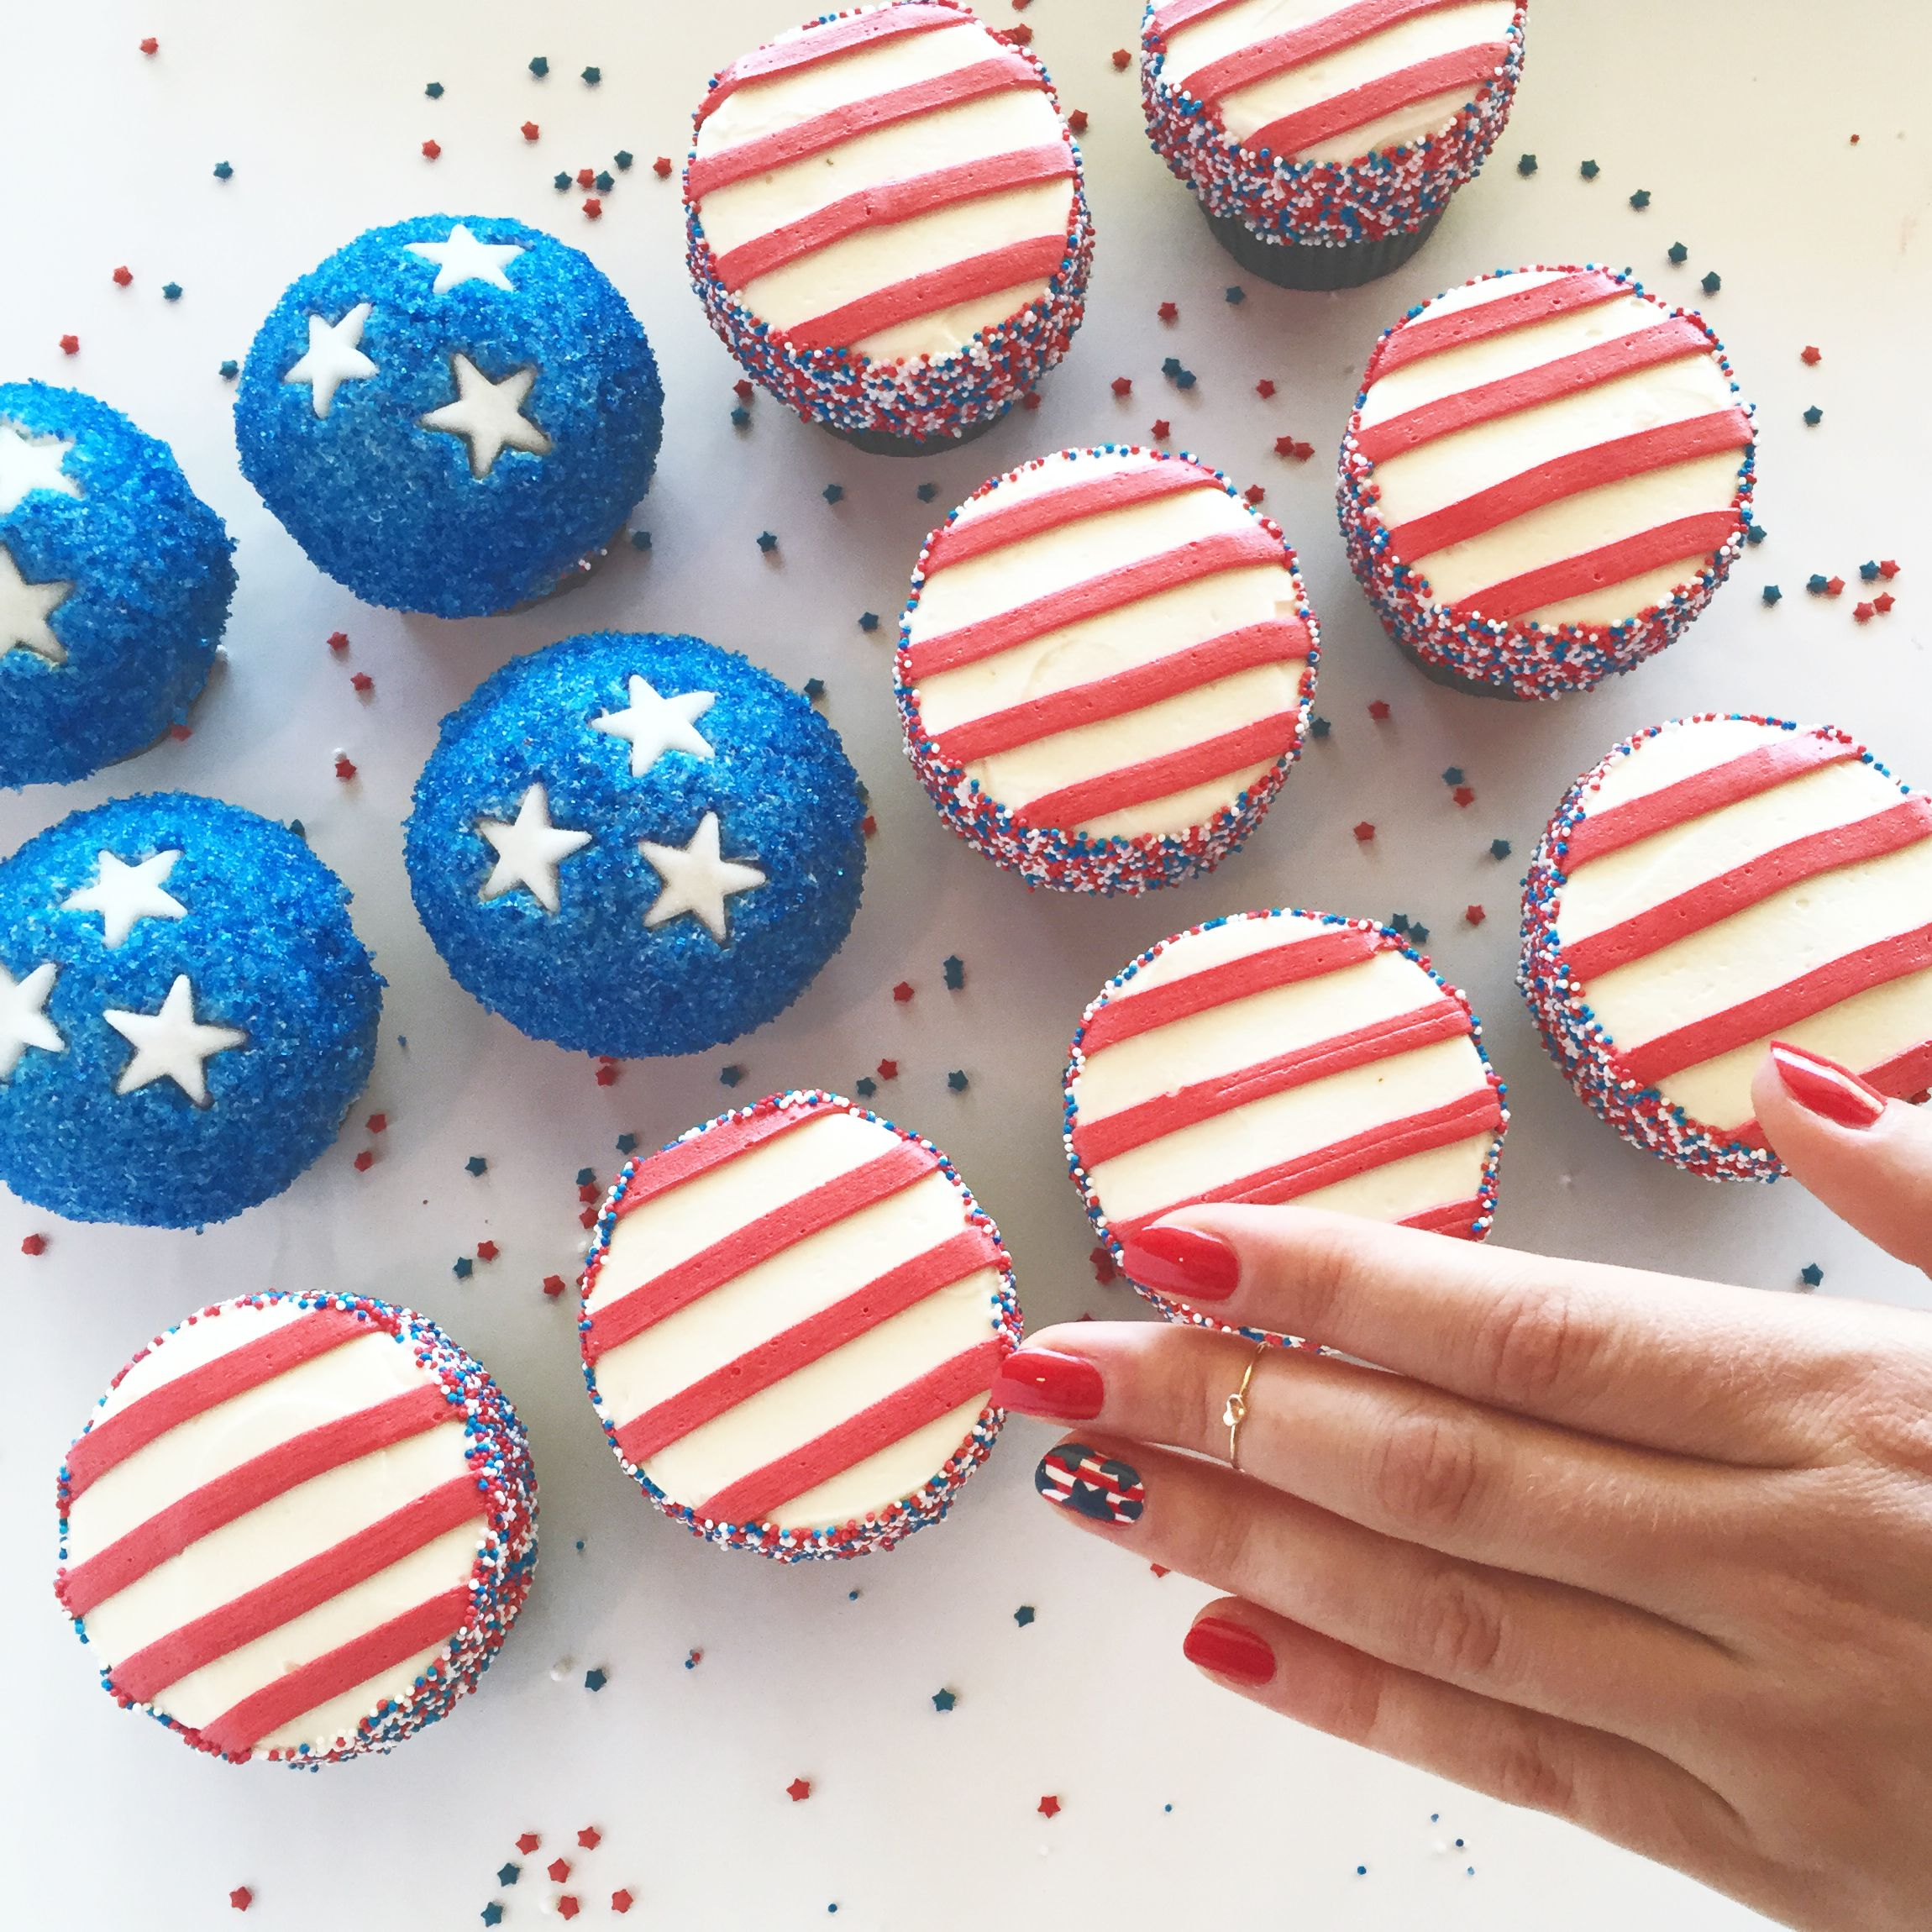 Cupcakes and matching manis? Yes please! cupcakes by @trophycupcakes & nails by @julepmaven #4thofJuly